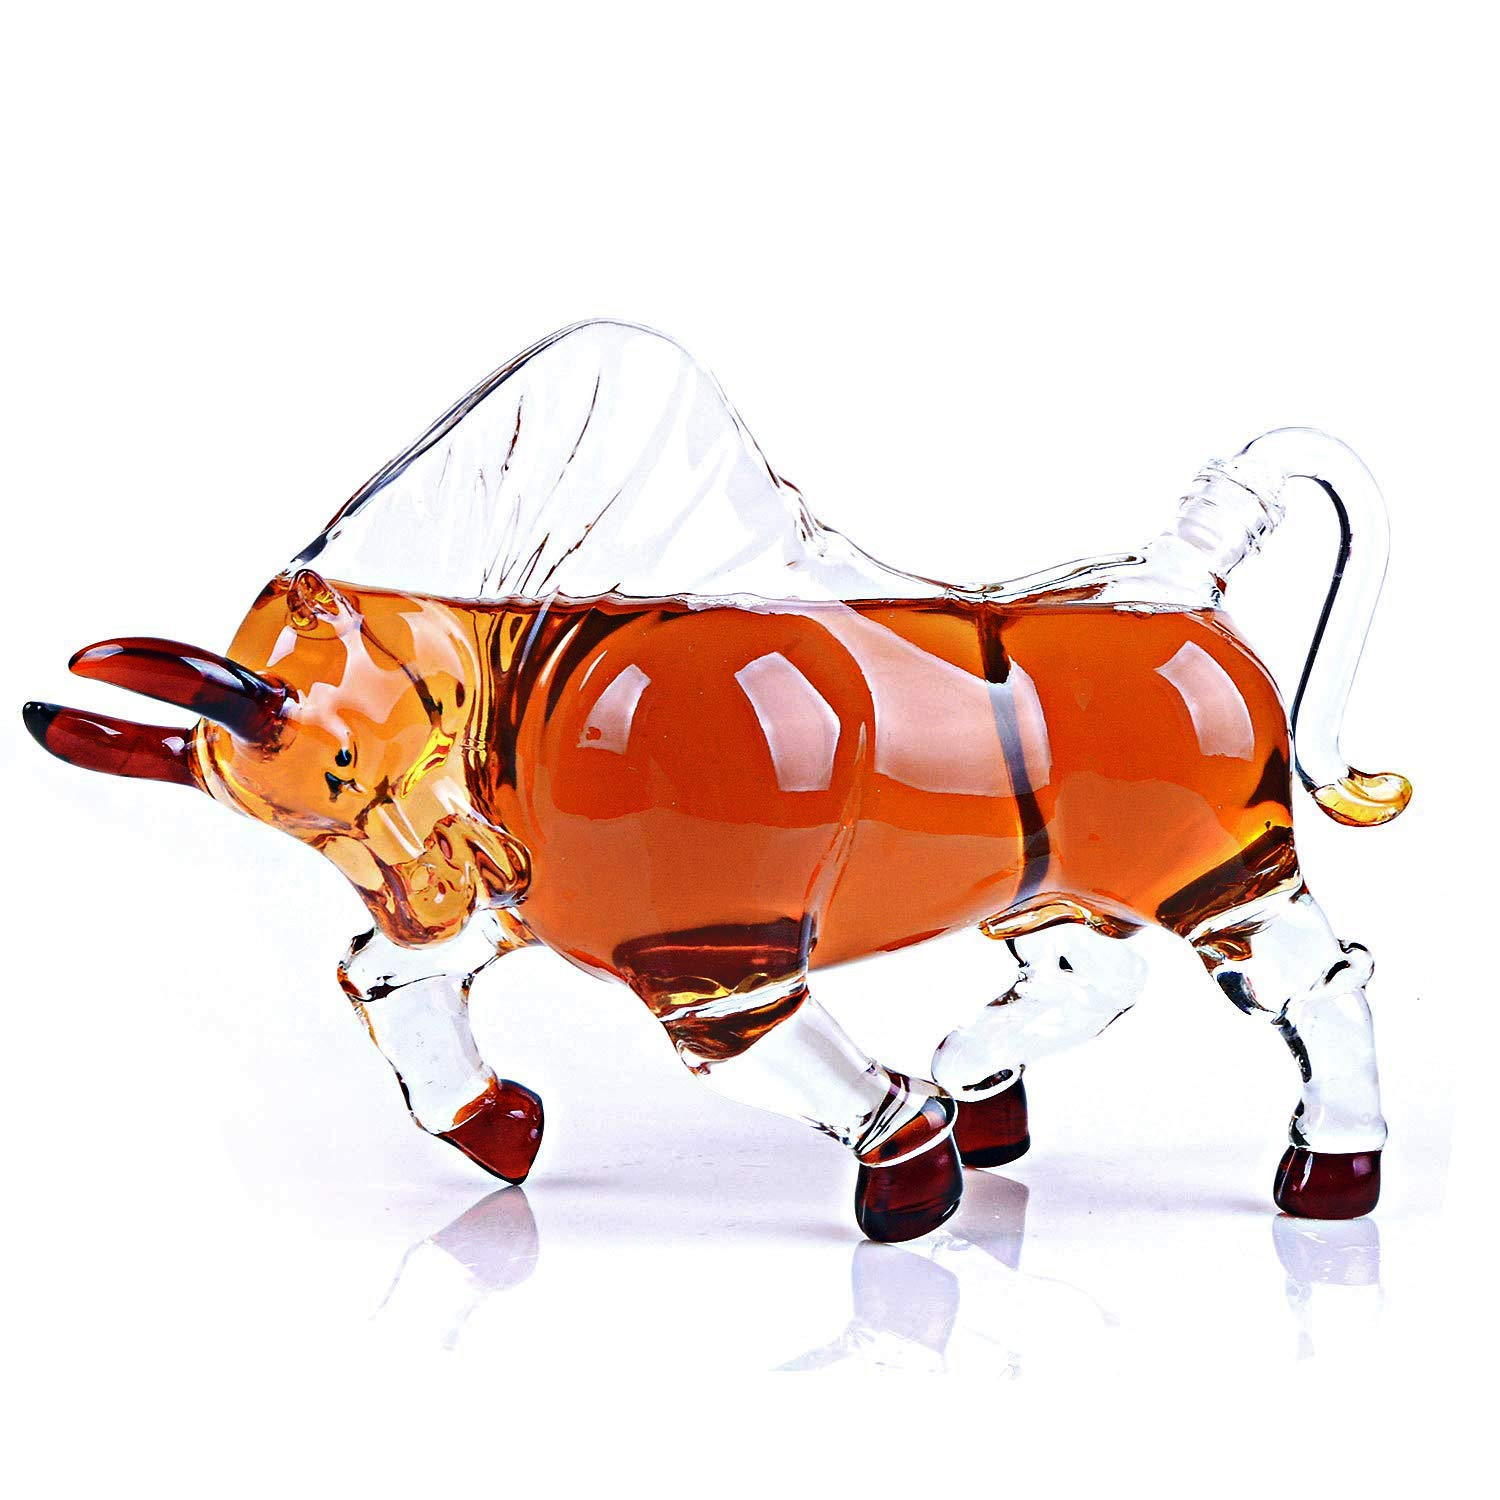 Animal Decanters Large 35-Oz Charging Bull Glass Figurine, Lead Free Mouthblown Liquor Decanter For Bourbon, Whiskey, Scotch, Rum, Tequila